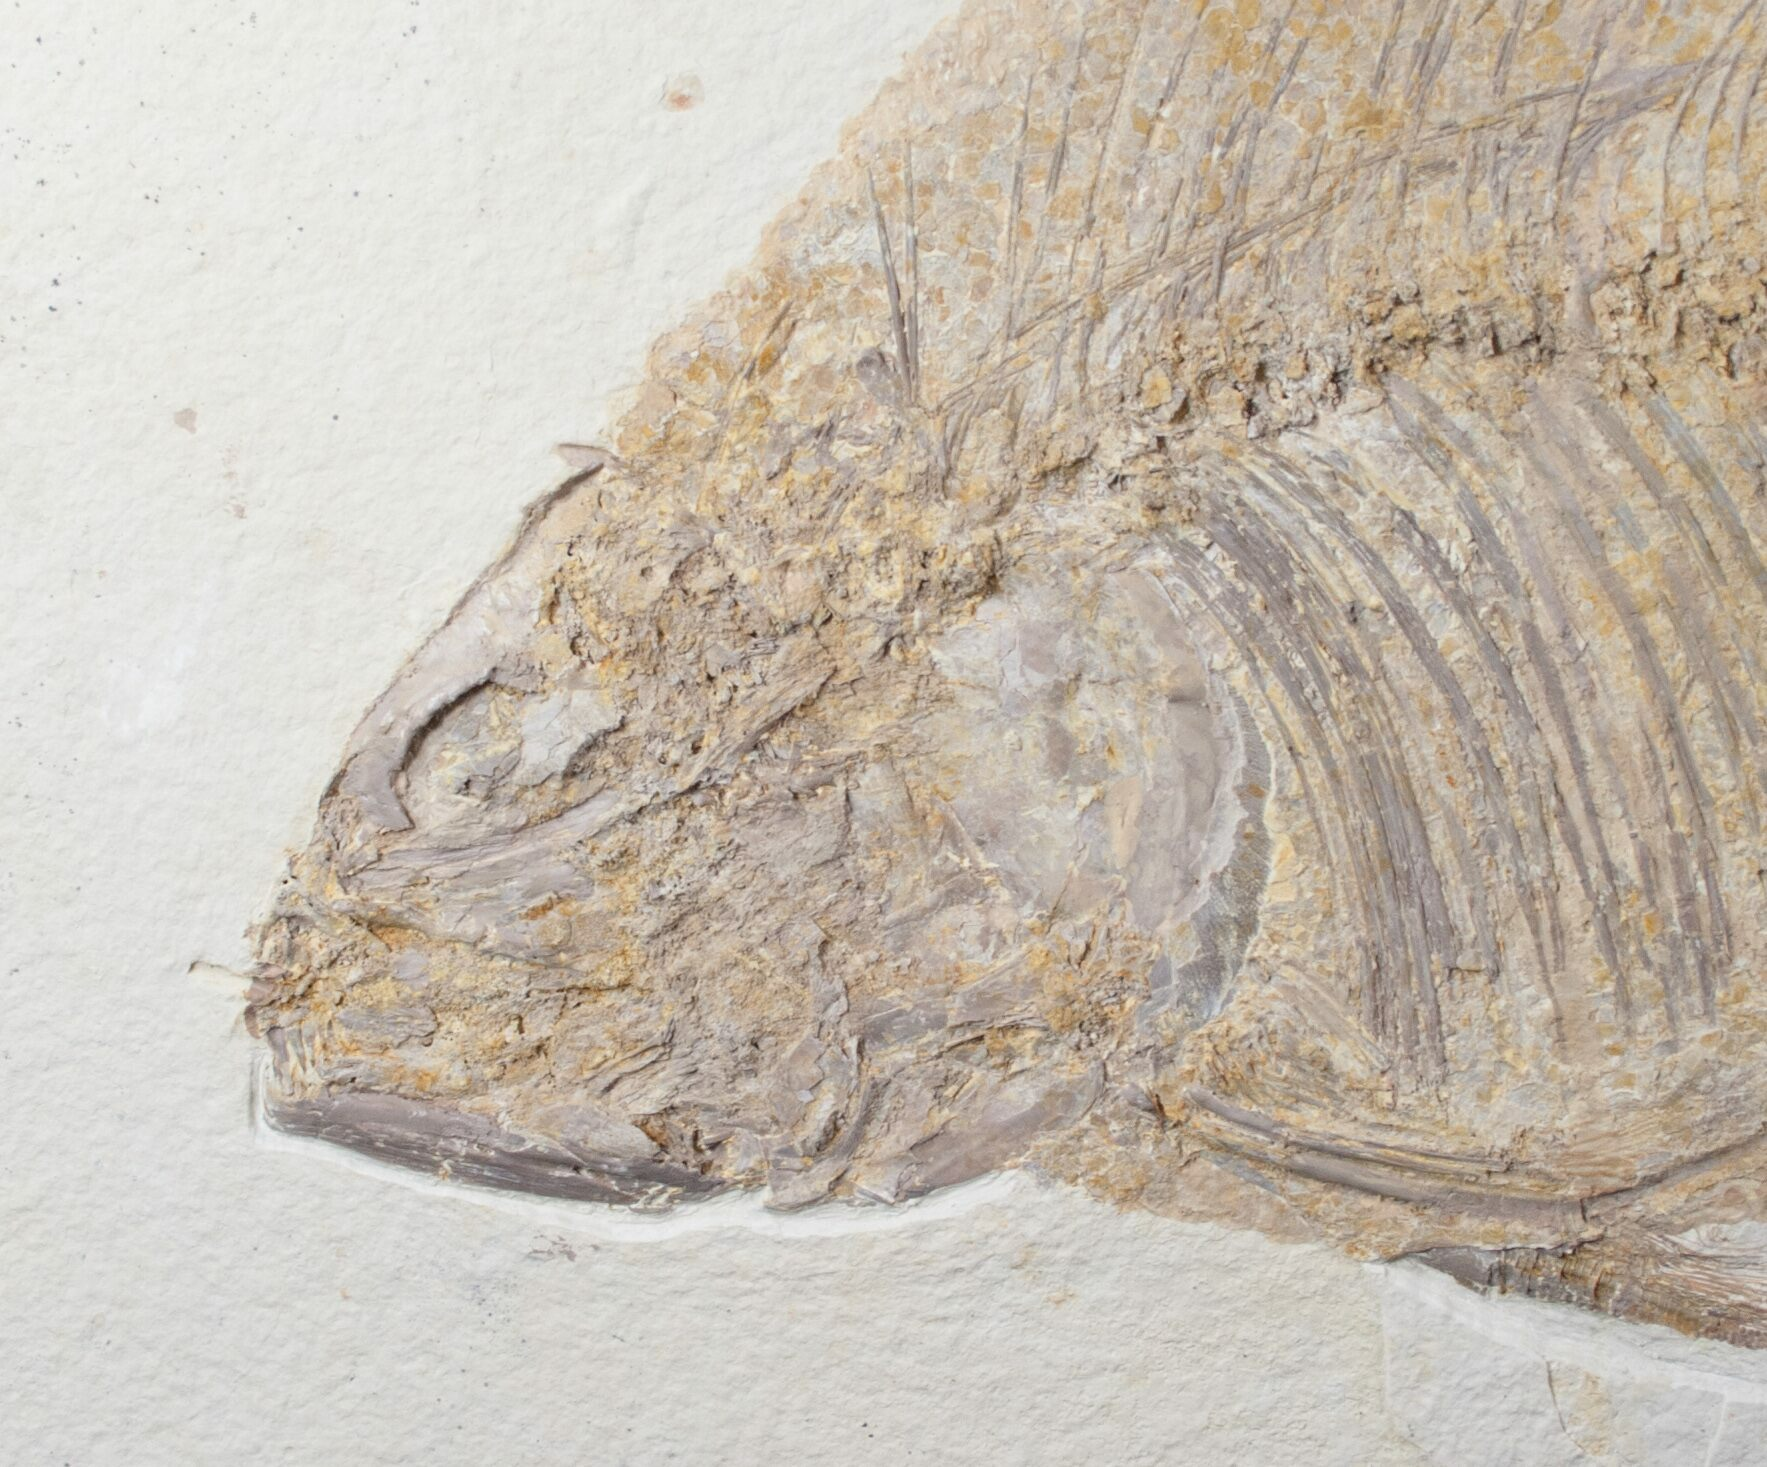 Large 14 5 phareodus fish fossil wyoming for sale for Fish fossils for sale